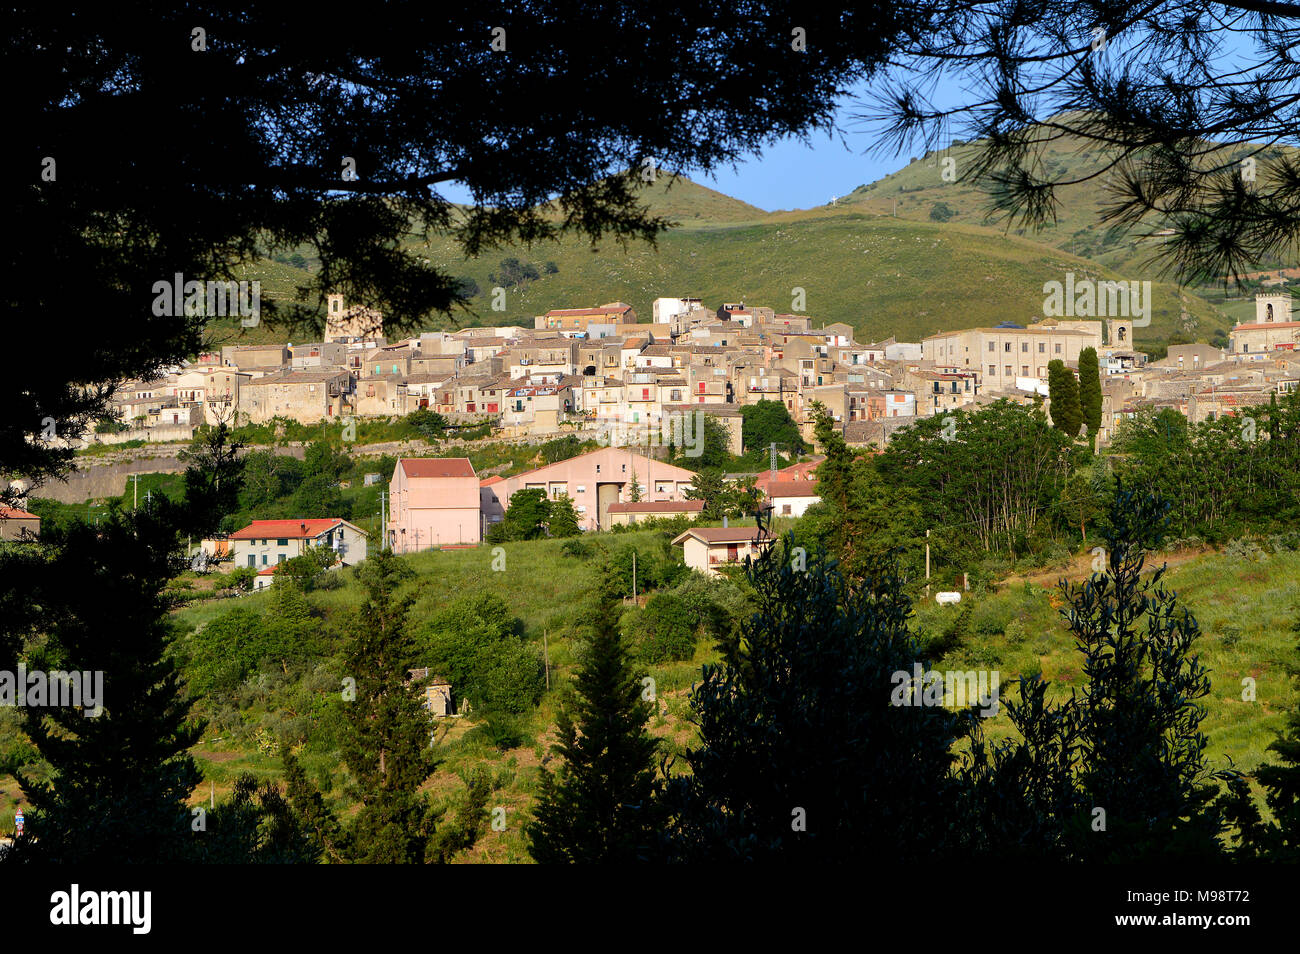 Area View of an Ancient Village in the Sicani Mountains, Palazzo Adriano, Palermo, Sicily, Italy - Stock Image